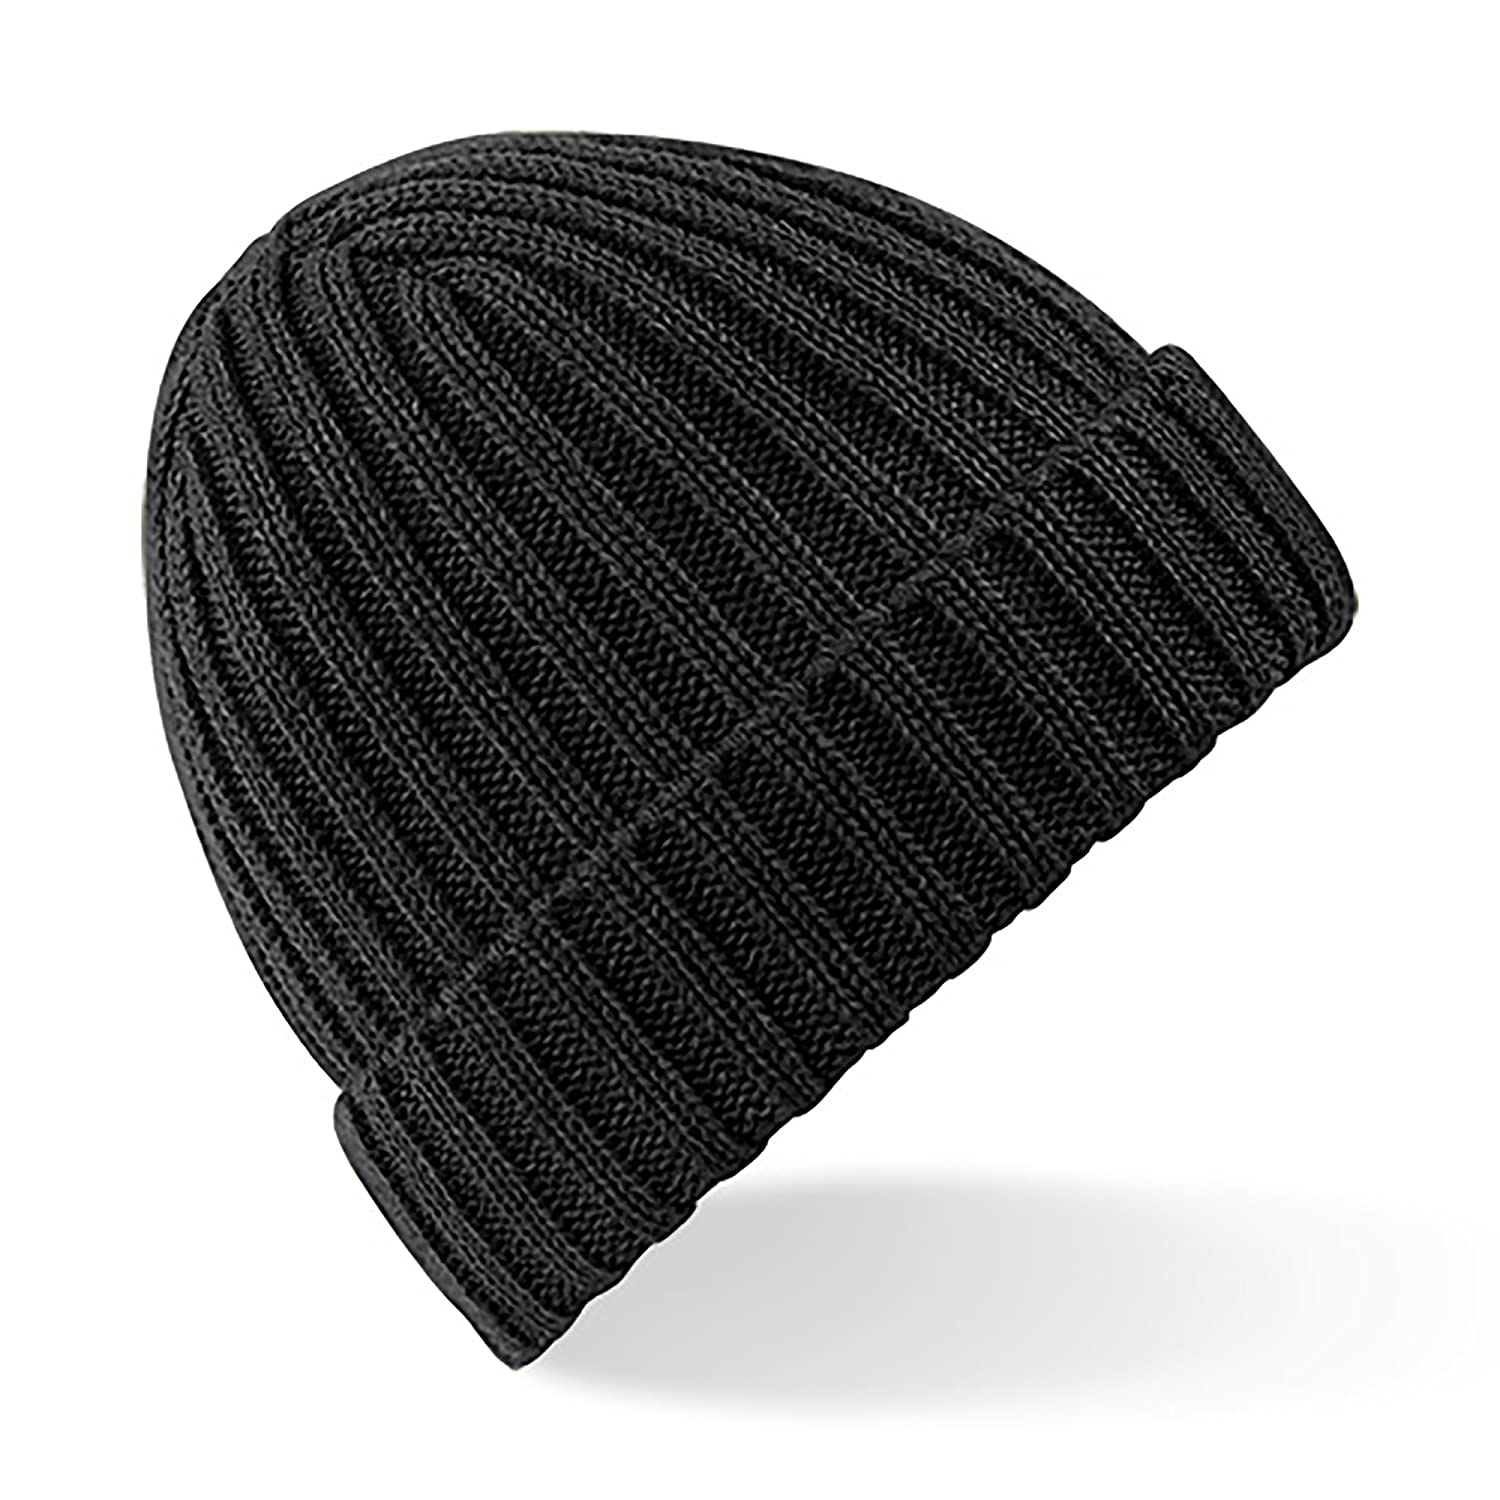 Amazon.com  Beechfield Unisex Winter Chunky Ribbed Beanie Hat (One Size)  (Black)  Clothing 3ce4a64a3c9